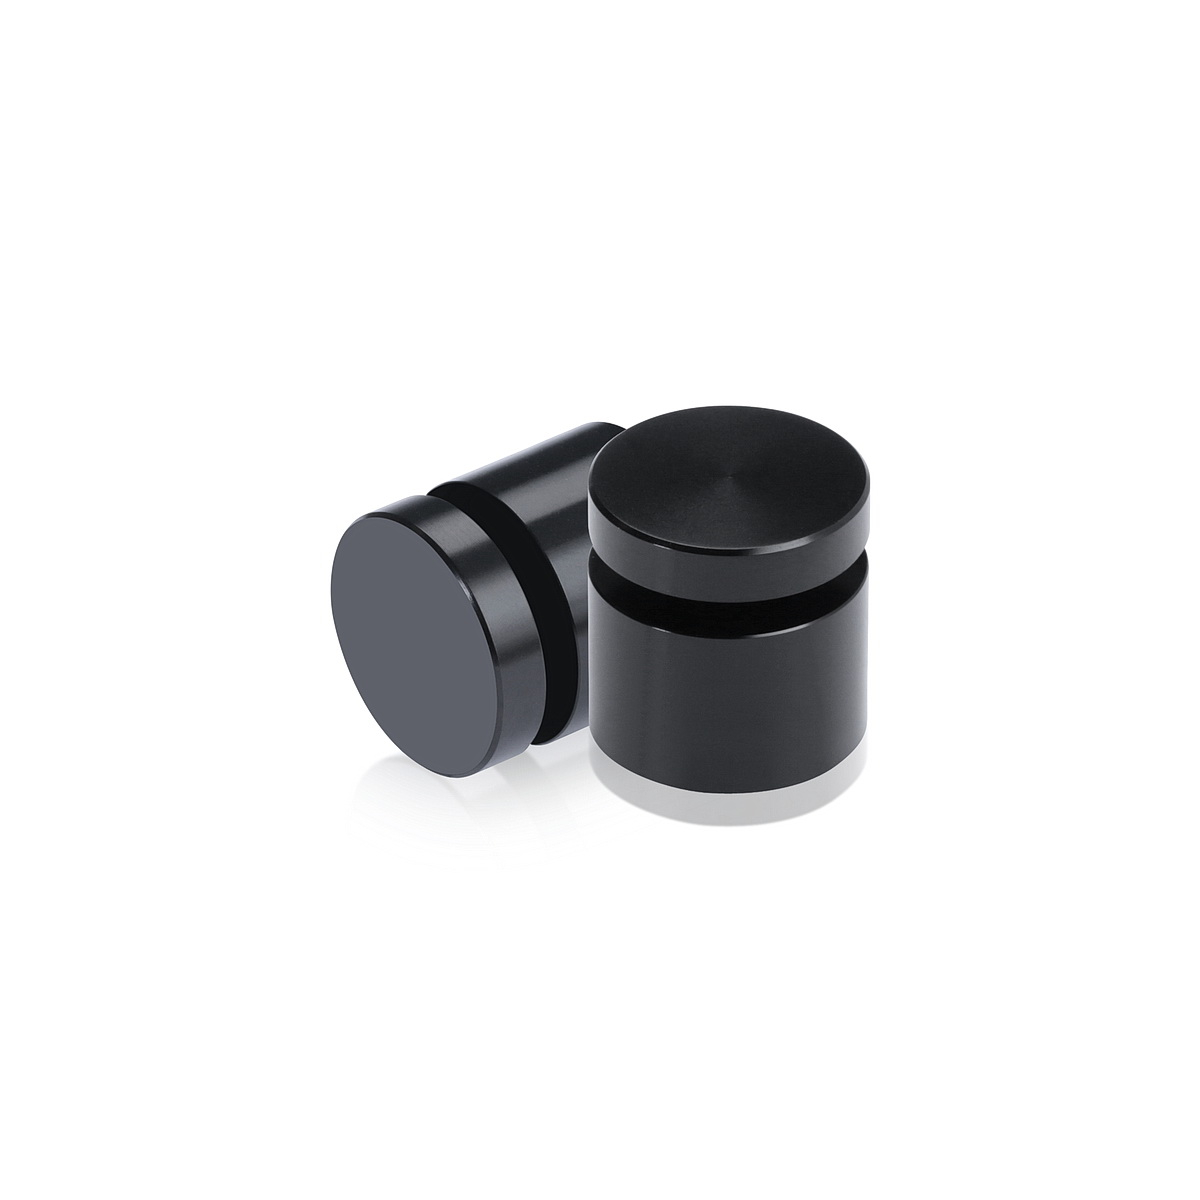 Affordable Aluminum Standoffs, Diameter: 3/4'', Standoff:  1/2'', Aluminum Black Finish